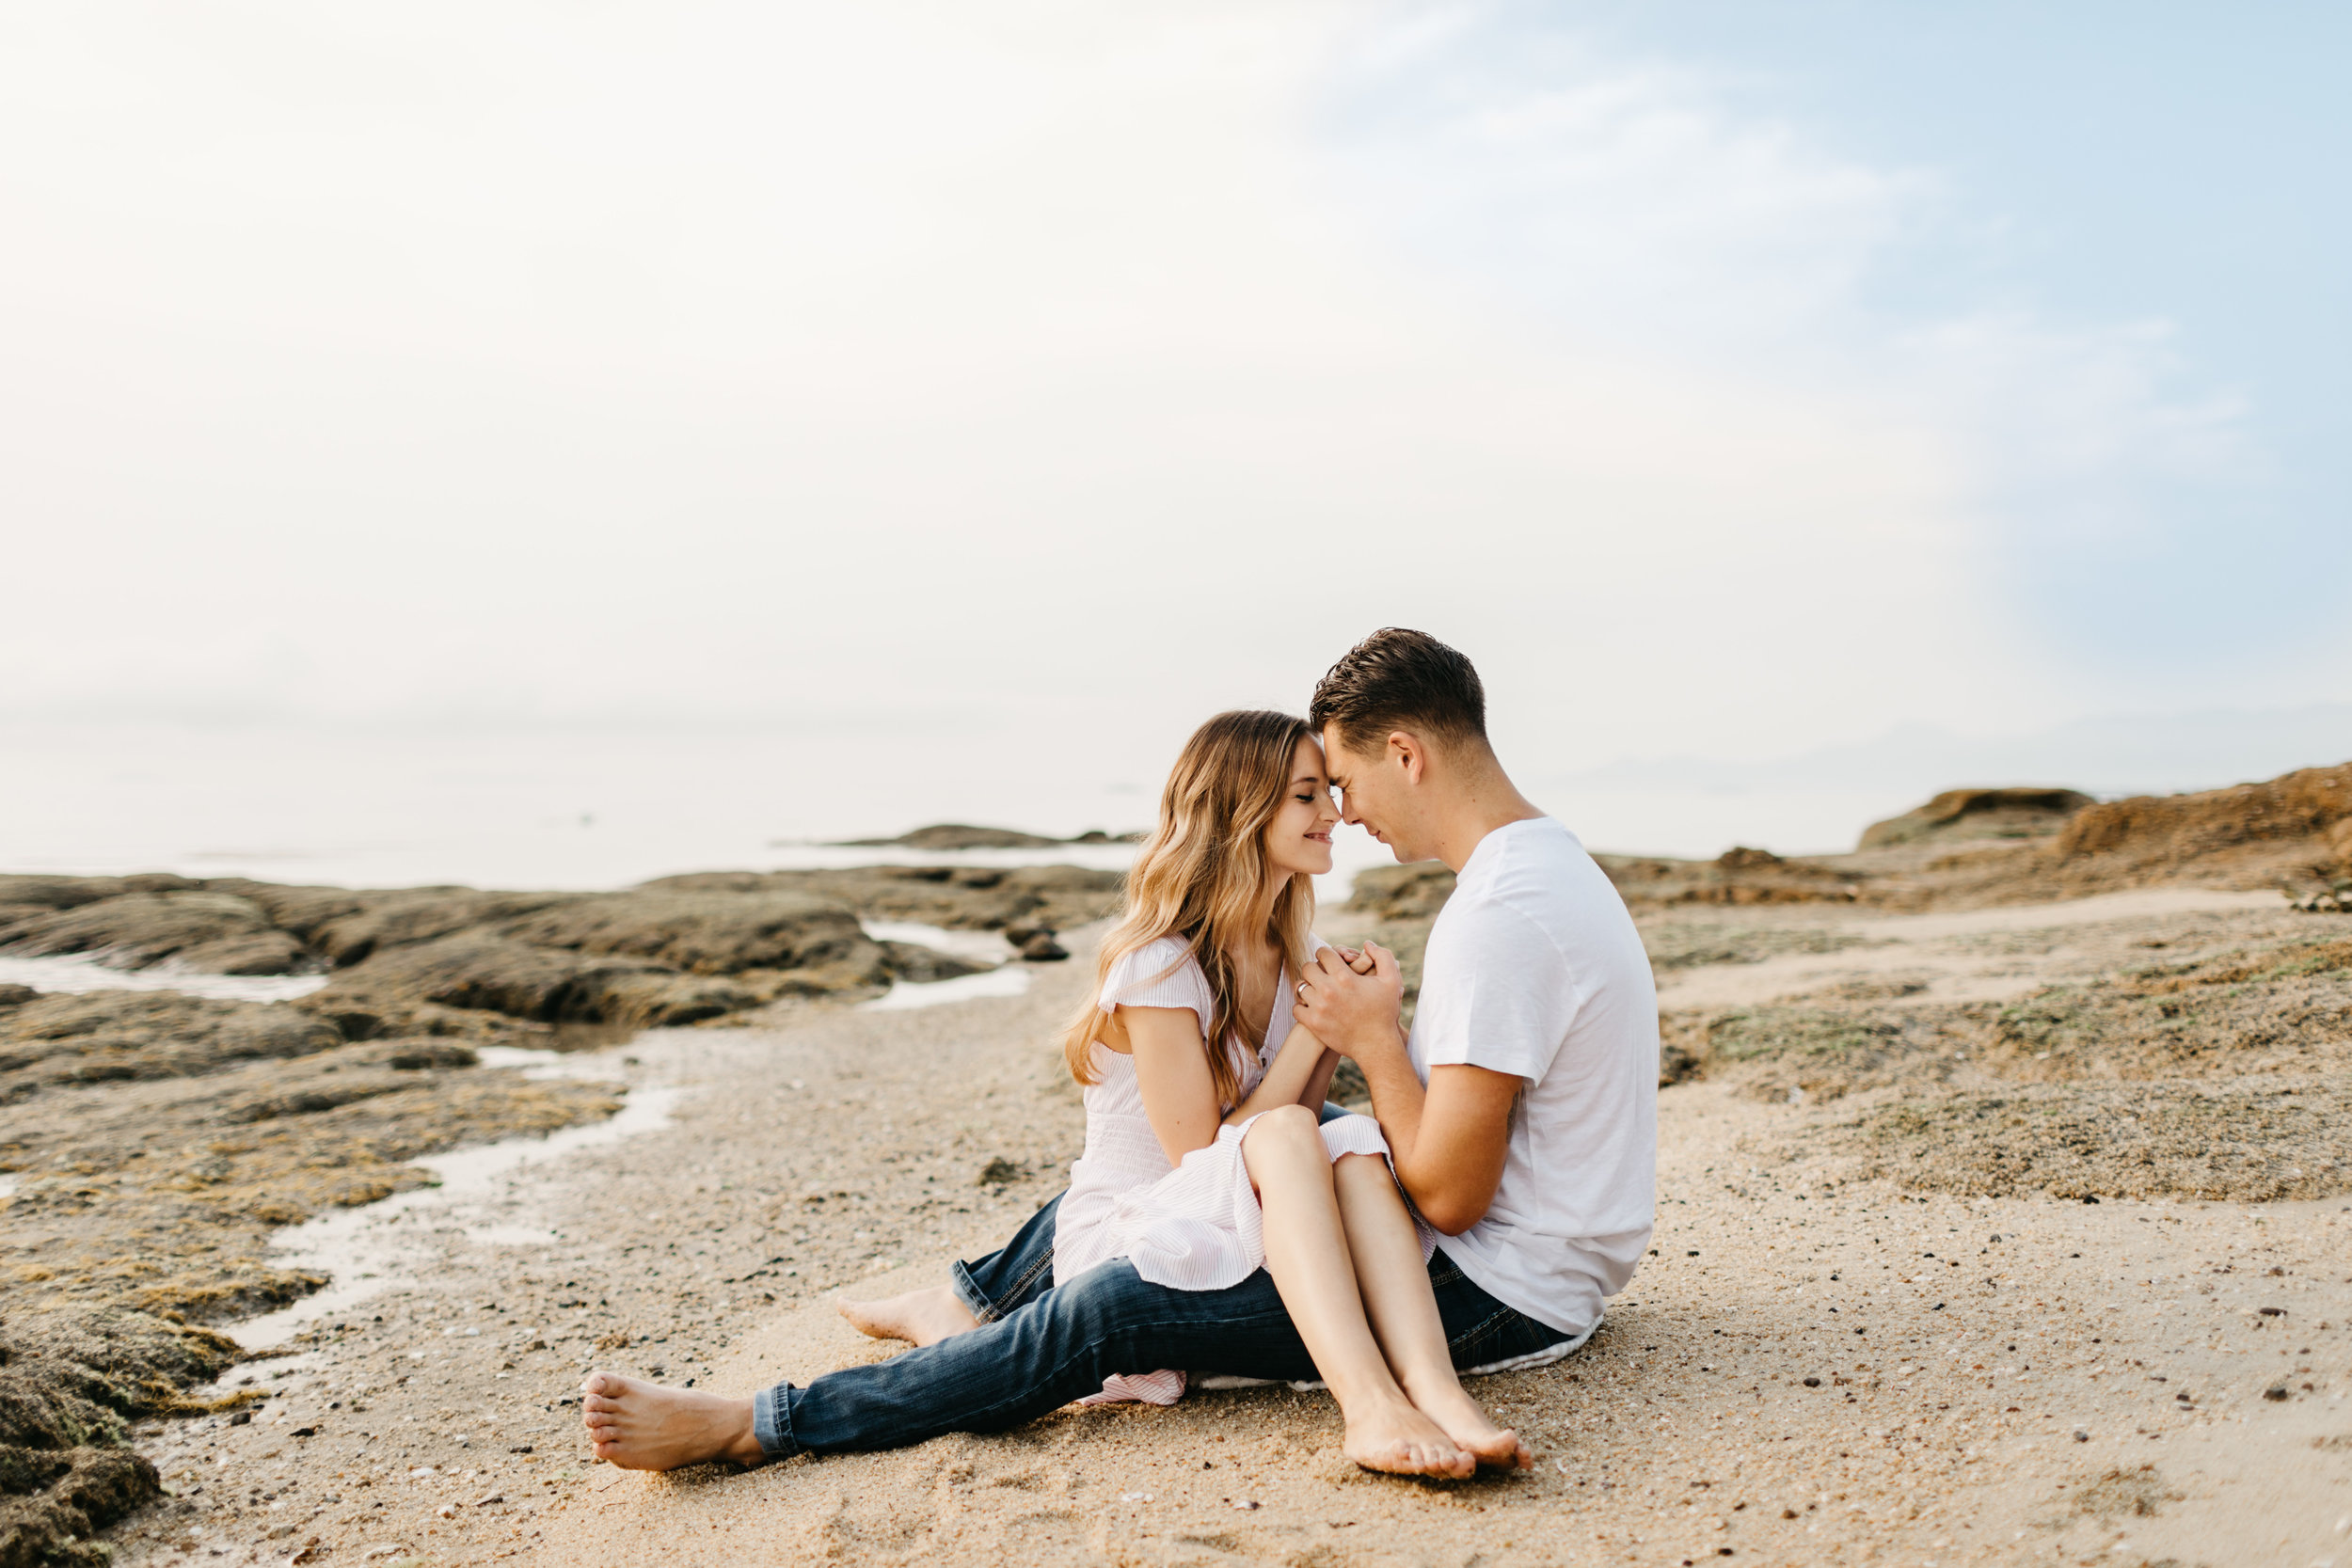 beach_anniversary_session_pictures_by_samantha_look-27.jpg